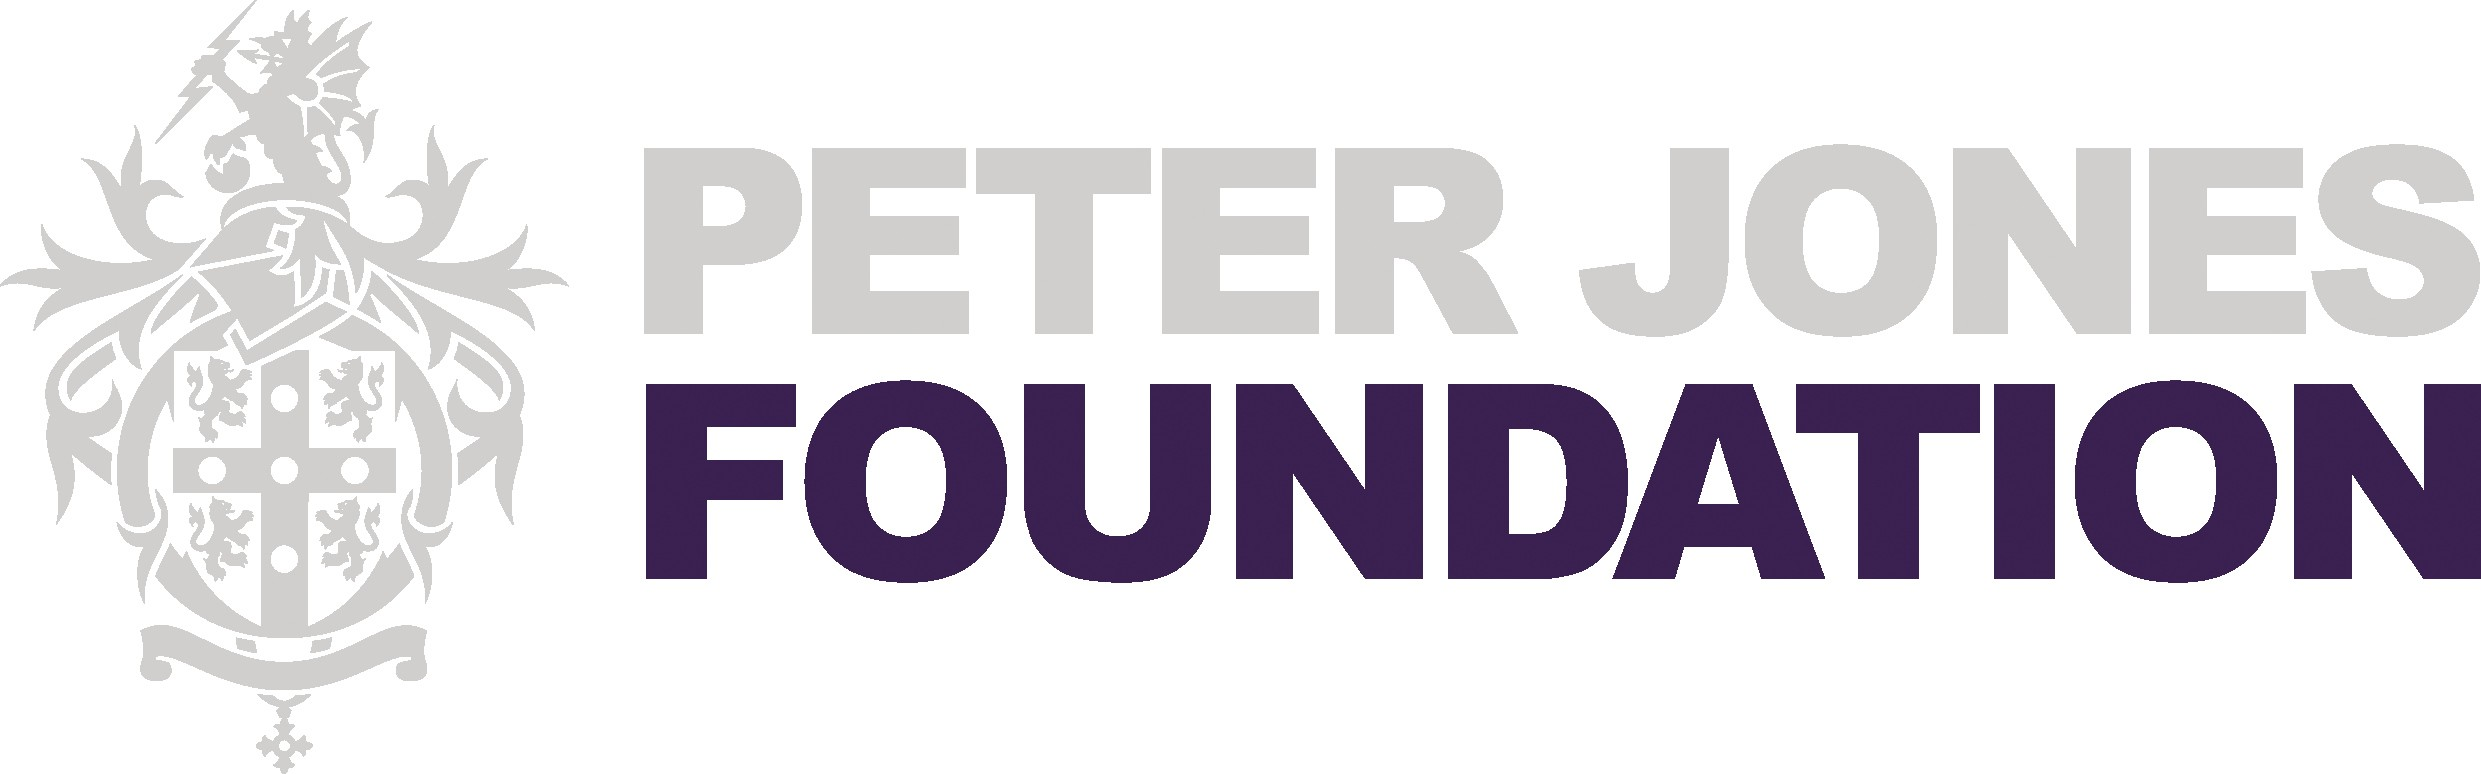 Peter Jones Foundation